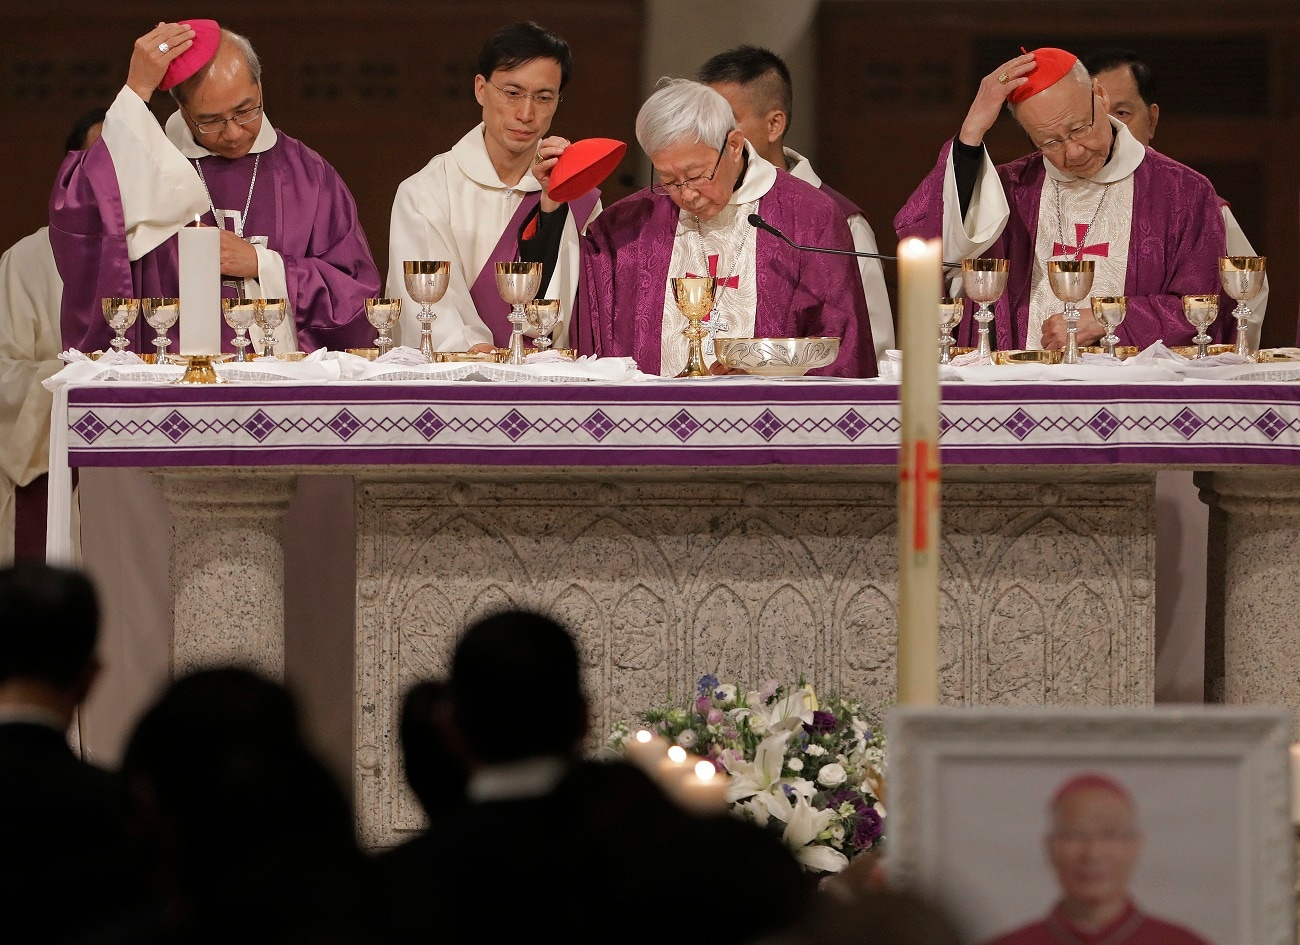 Bishop Joseph Ha, Cardinal Joseph Zen and Cardinal John Tong attend a vigil Mass for Bishop Michael Yeung in Hong Kong. Hong Kong Catholics mourned the loss of their bishop with a Mass on Thursday night amid a low-key struggle among clergy over reconciliation between the Vatican and Beijing.  (AP Photo/Vincent Yu, File)